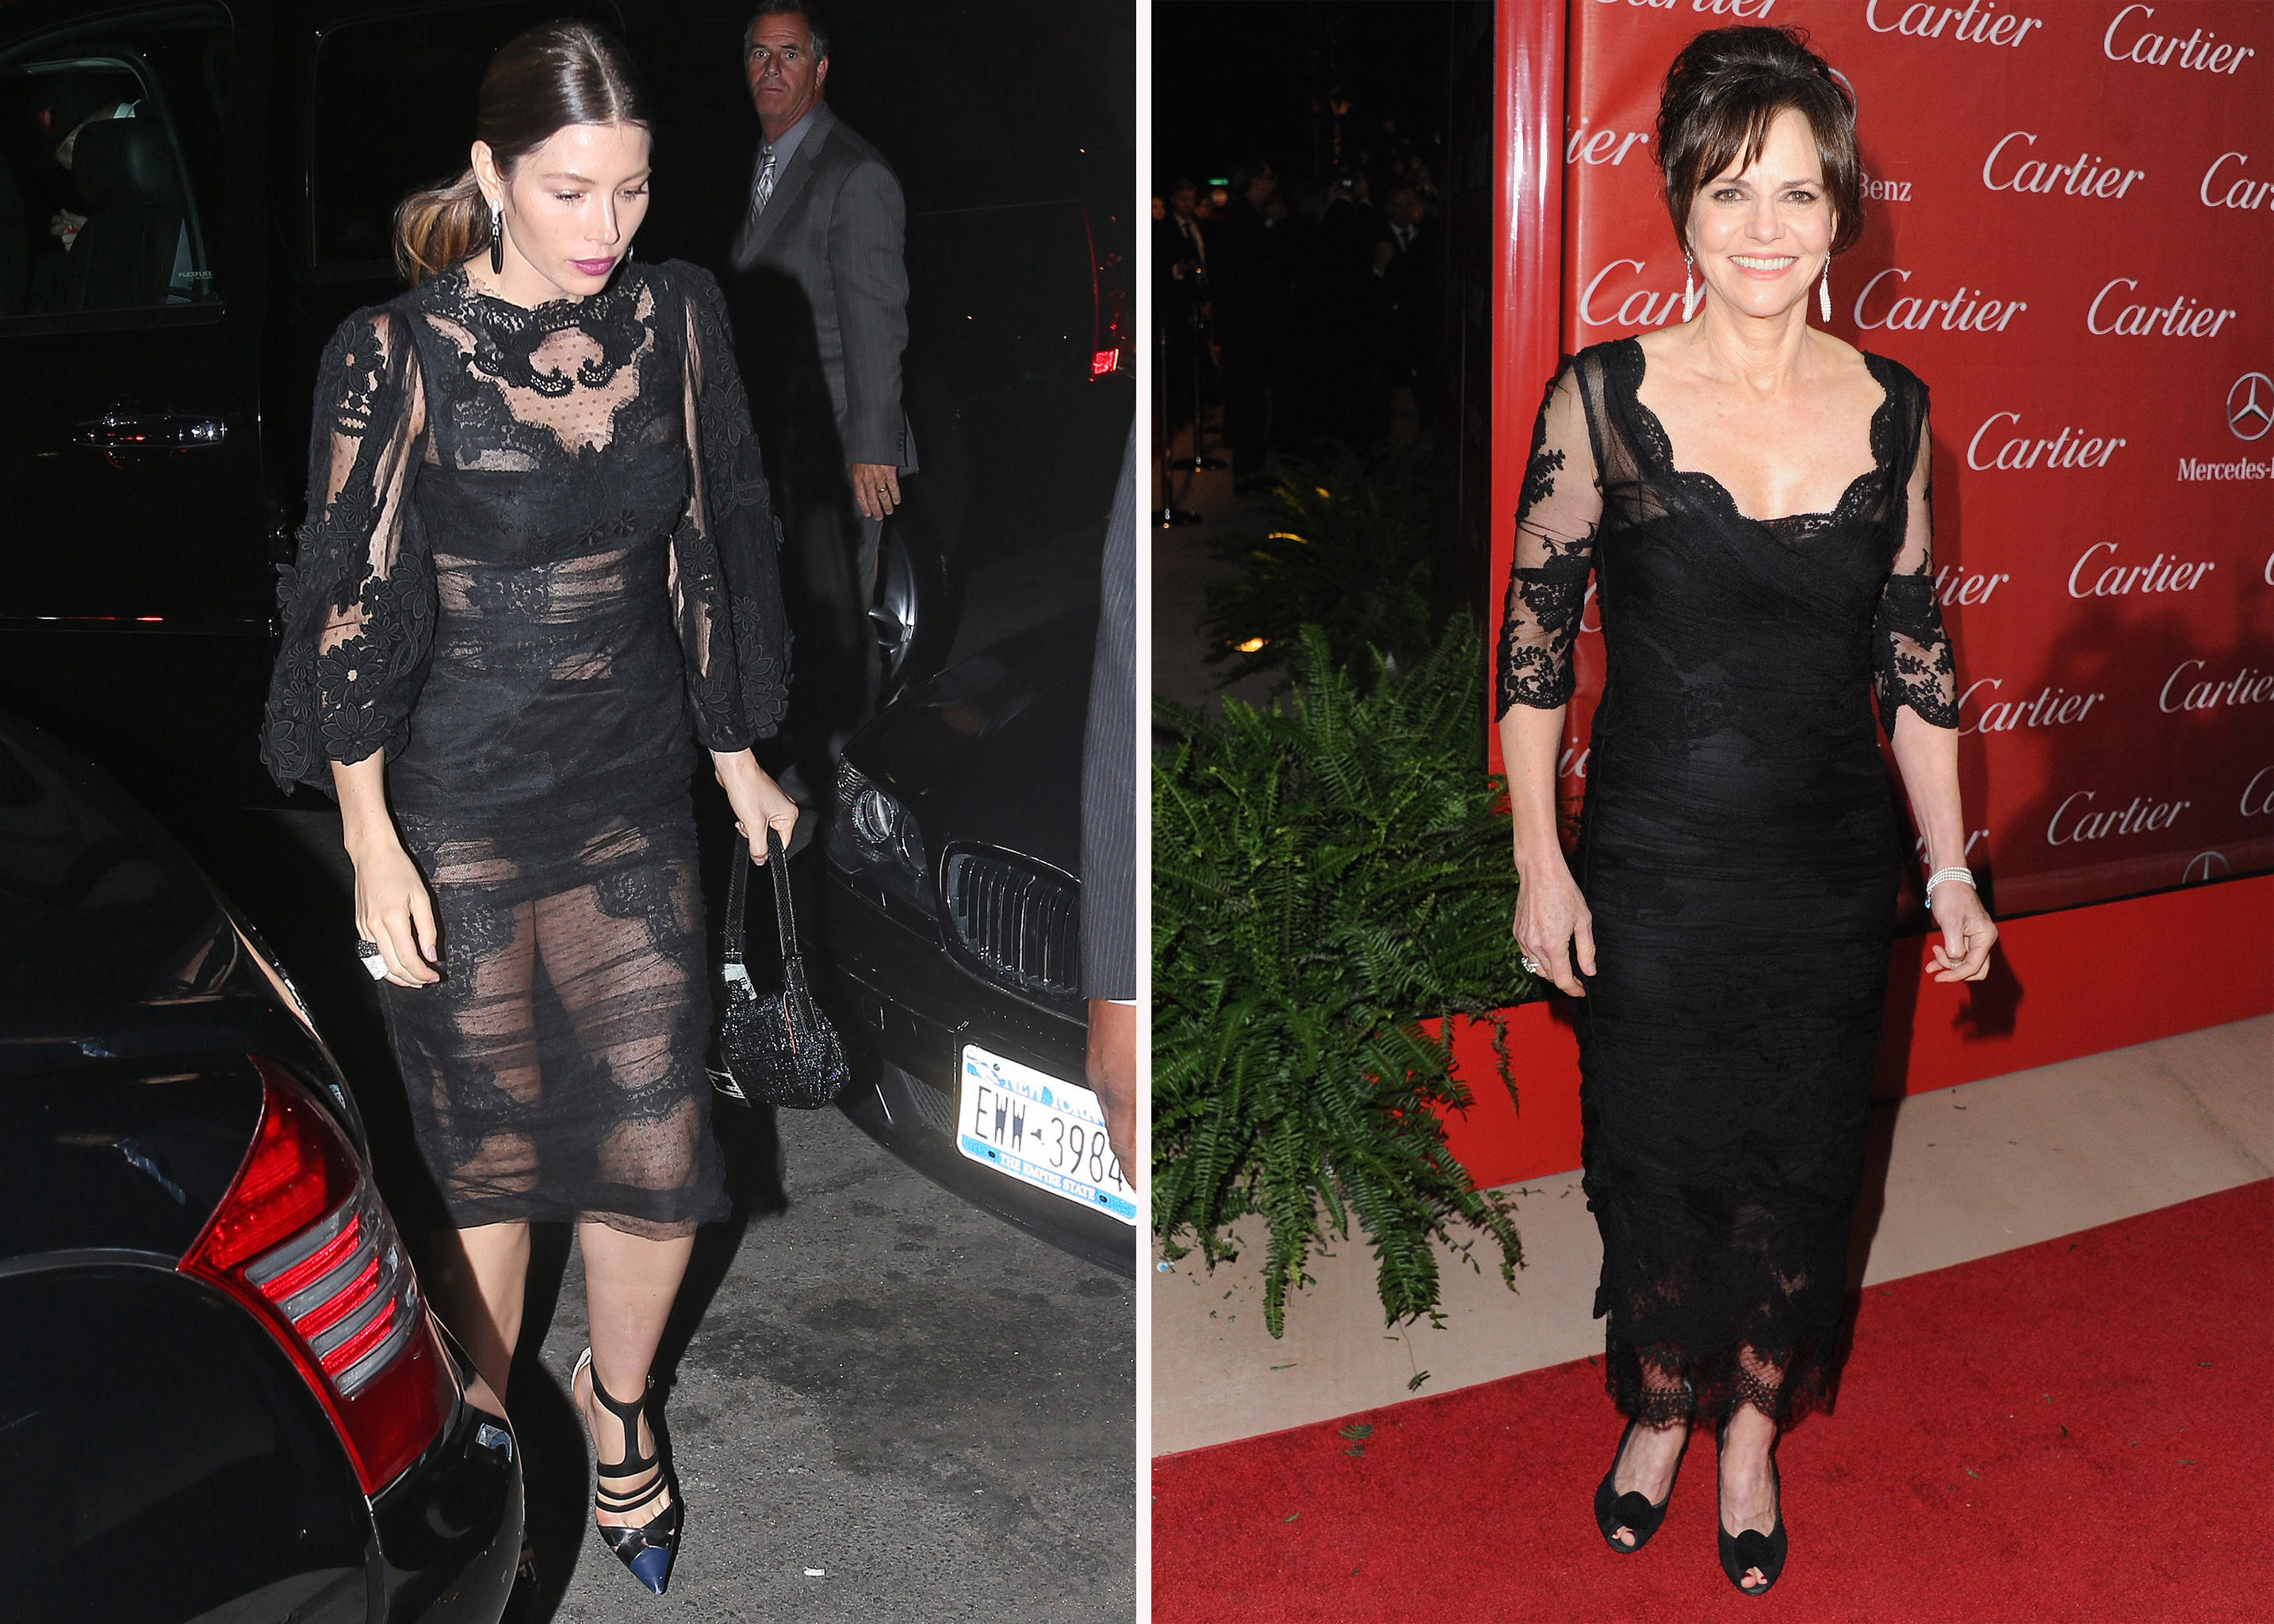 Jessica Biel and Sally Field step out in black lace. (Splash News/Getty Images)